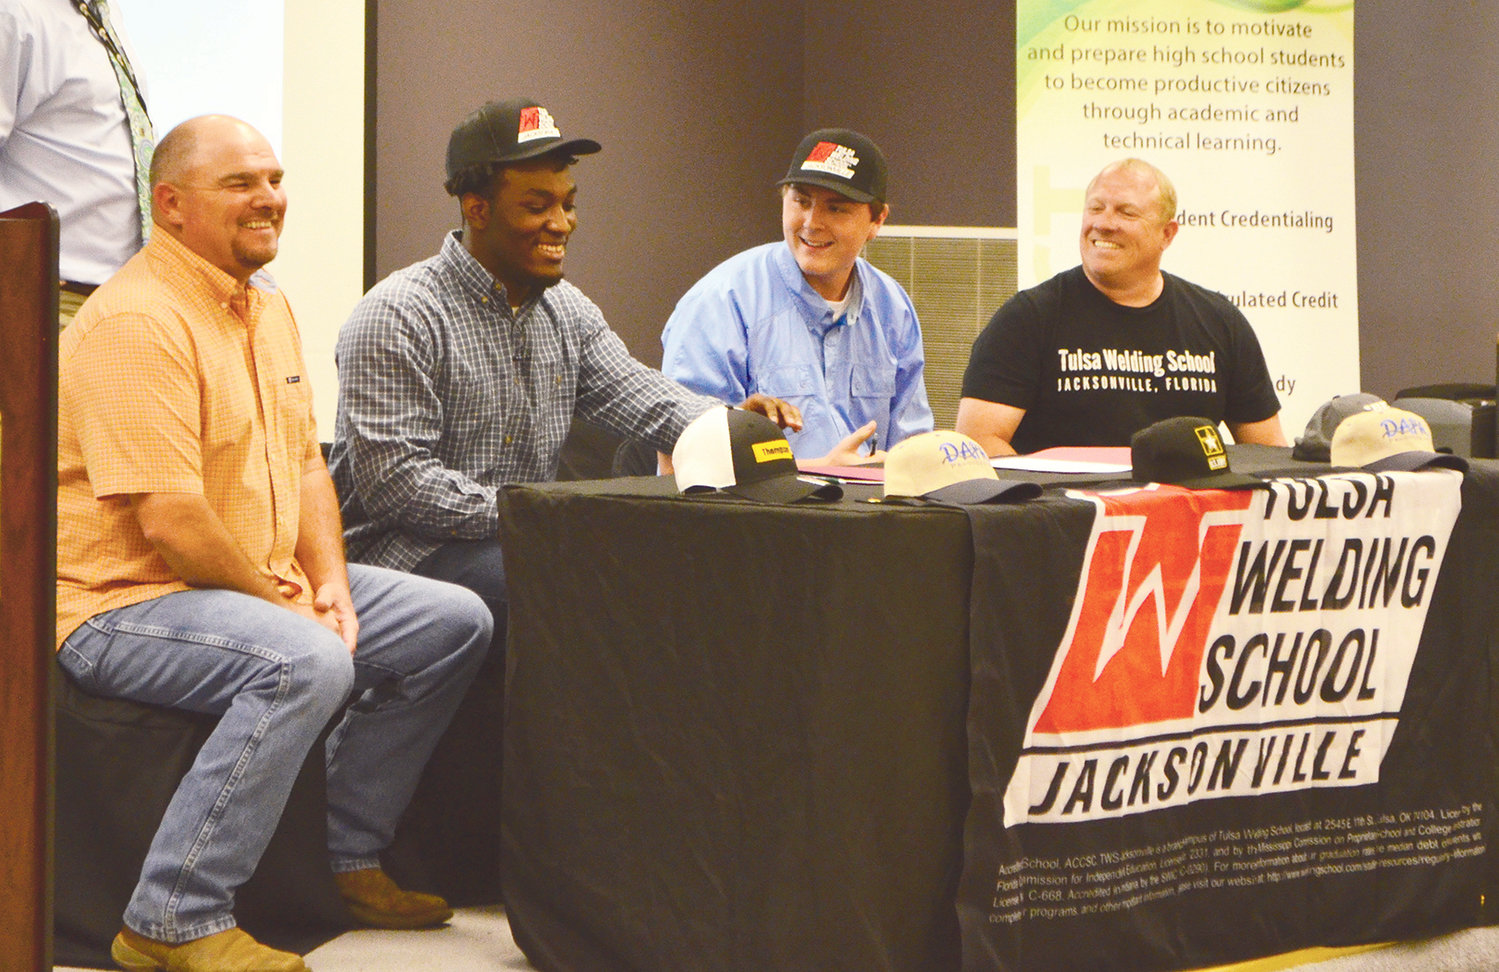 At center, Cameron Lambert (Jasper High) and Cody Hall (Carbon Hill High) signed with Tulsa School of Welding at the Walker County Center of Technology's signing day Thursday.